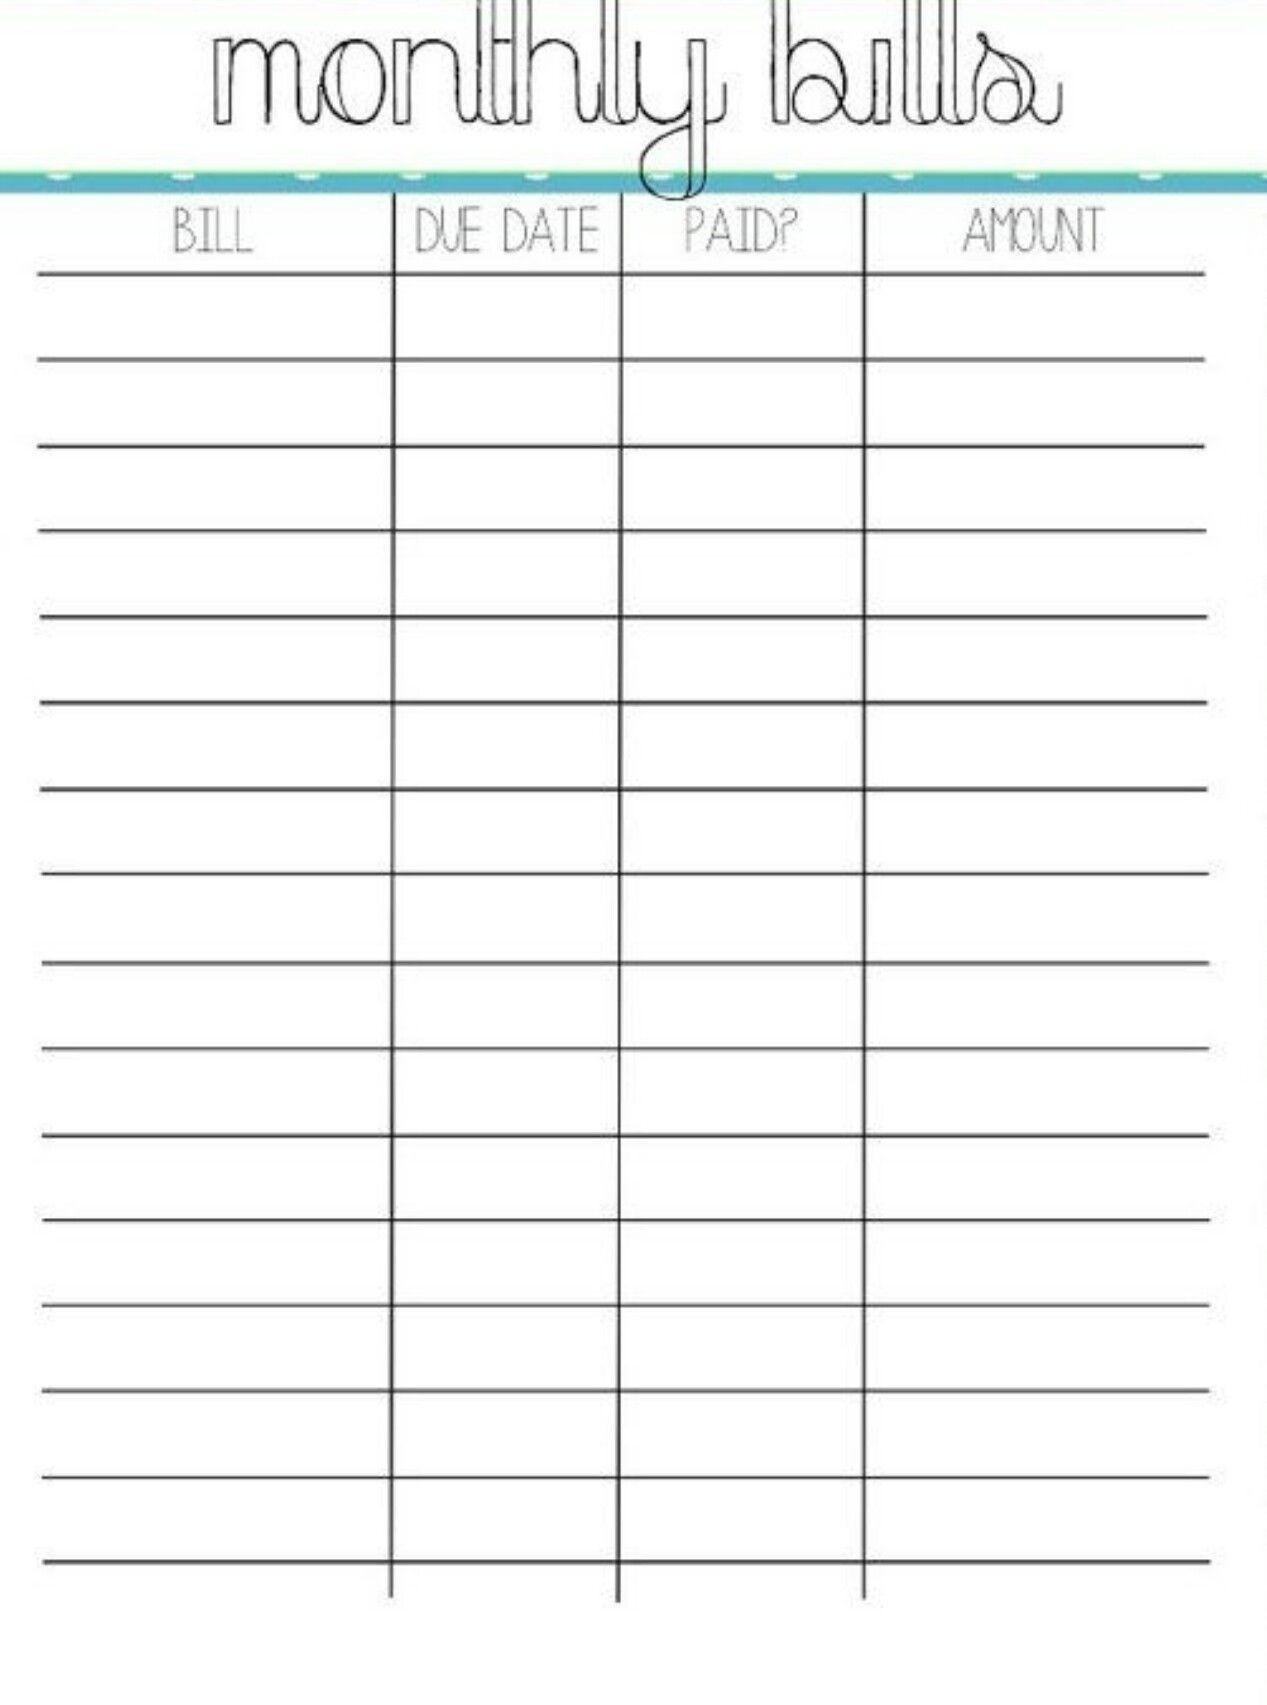 Blank Monthly Bill Payment Worksheet